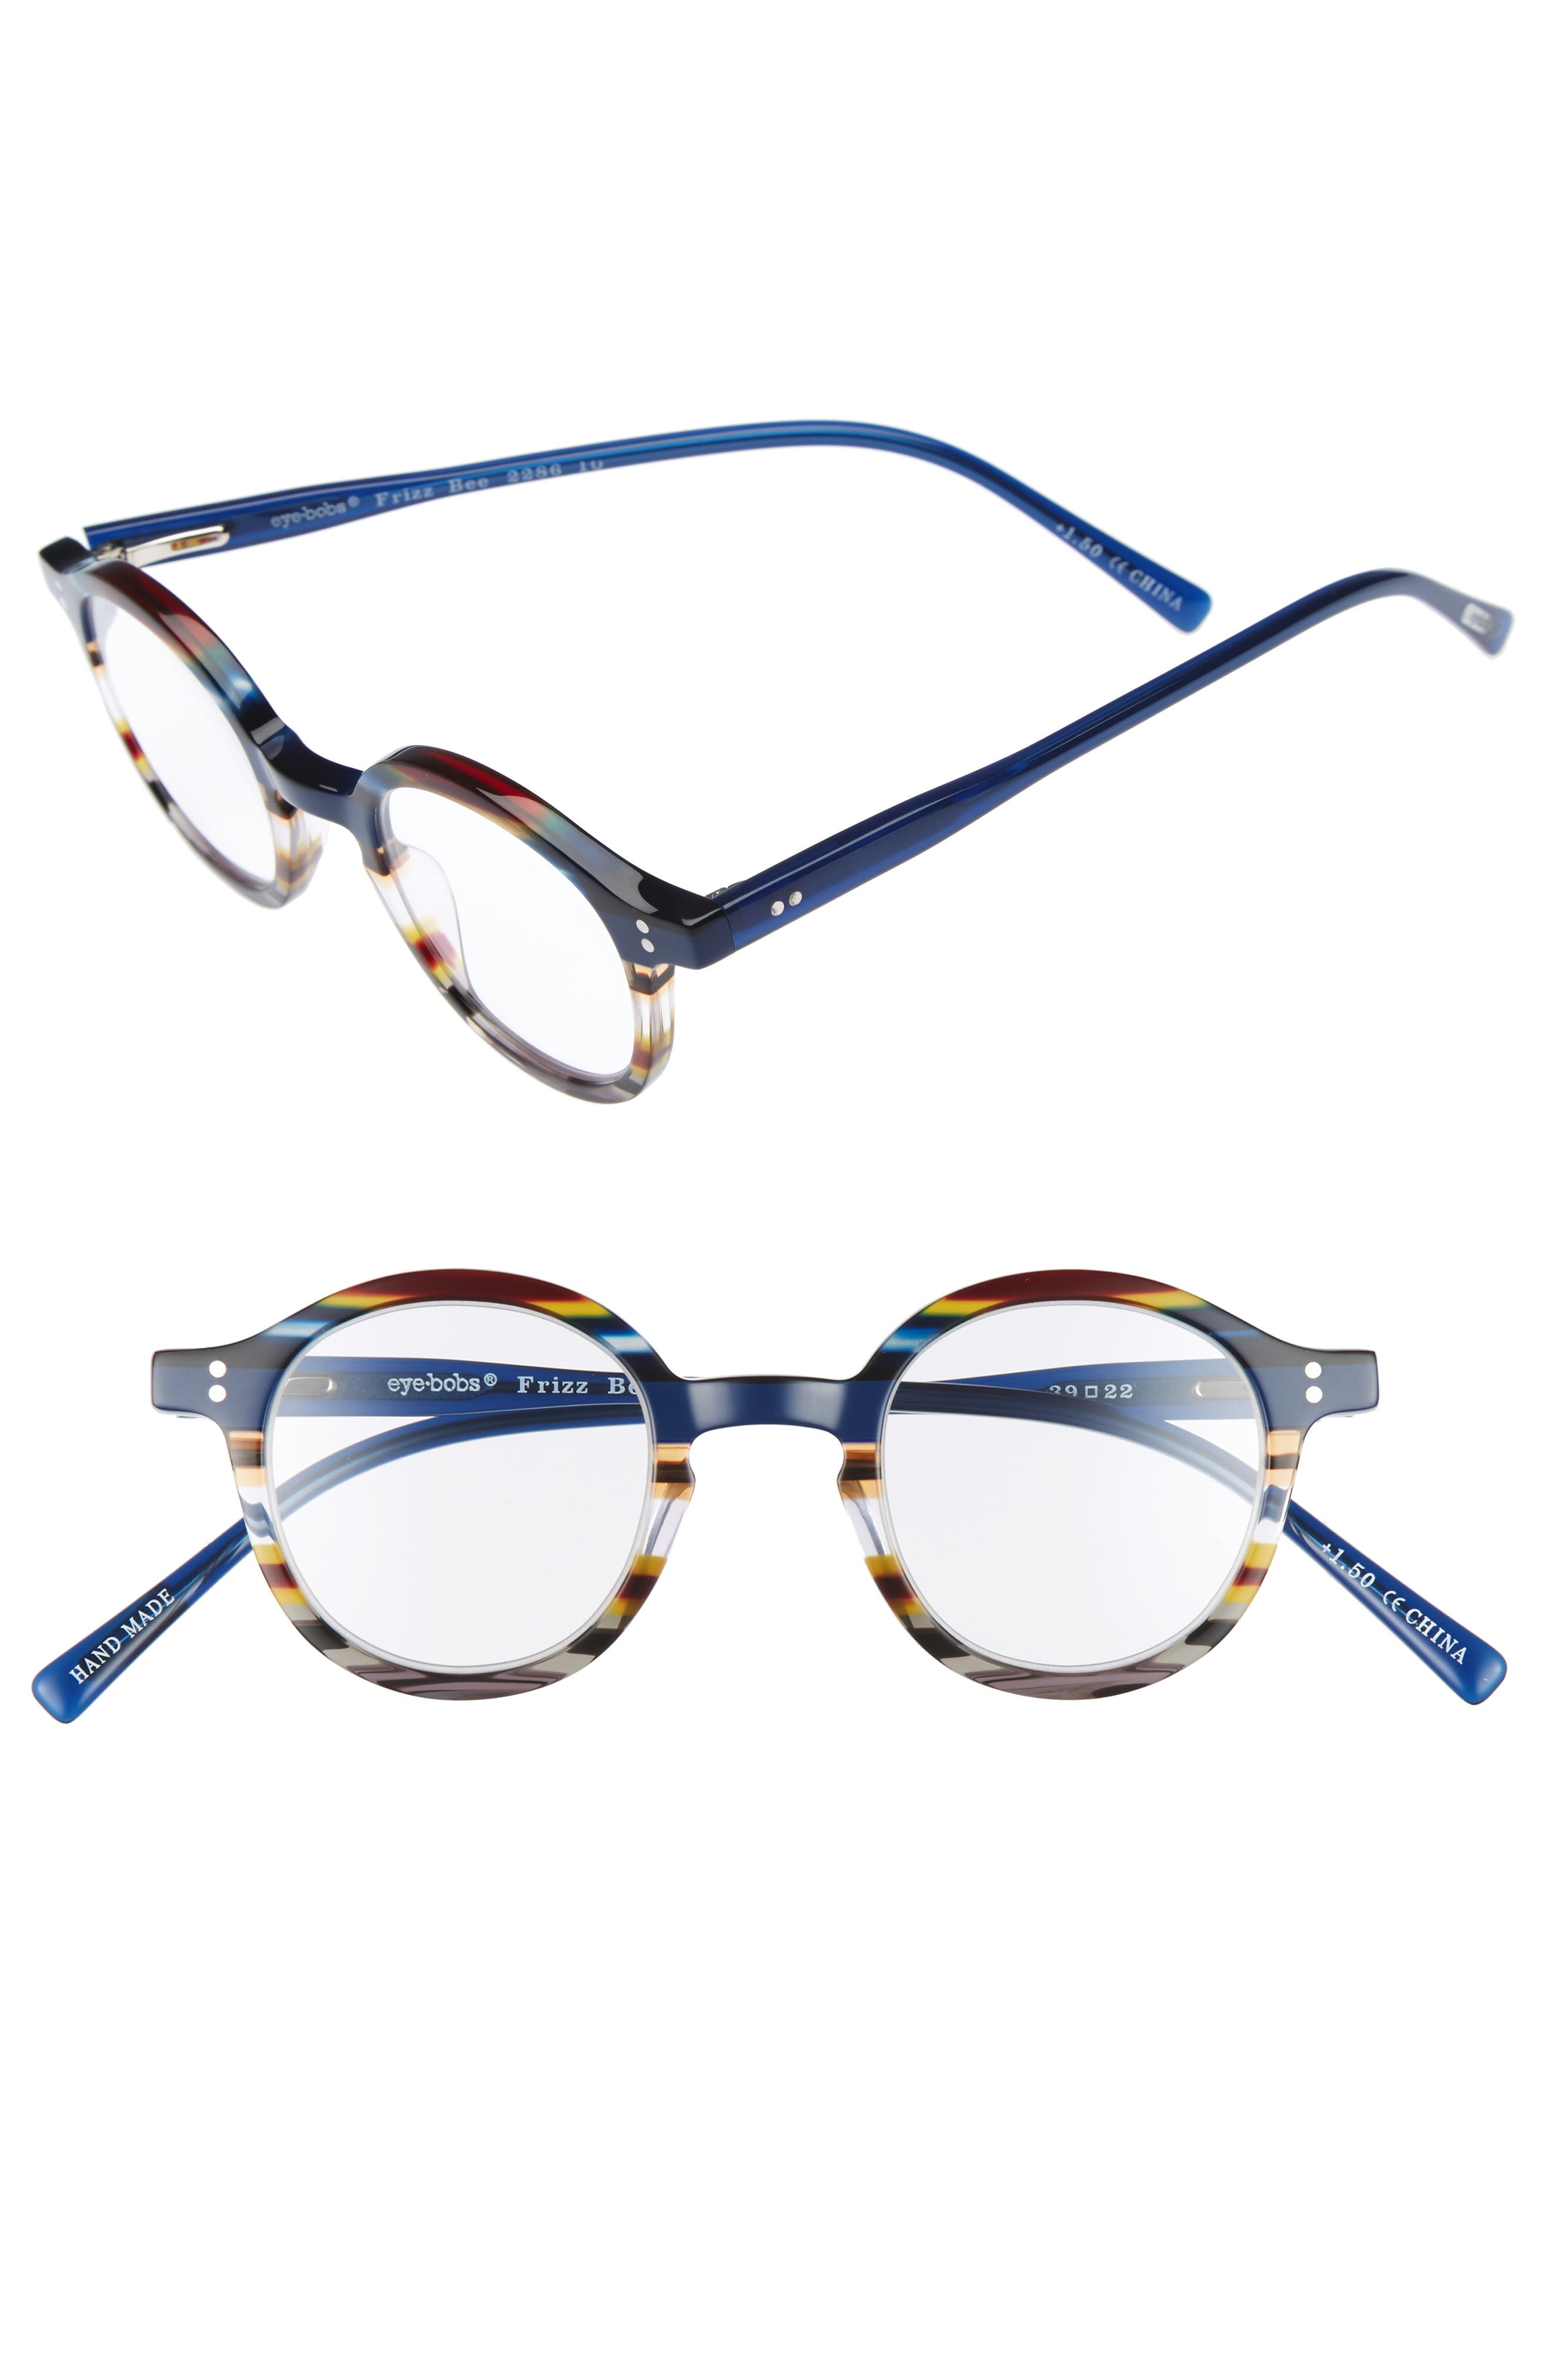 Main Image - Eyebobs Frizz Bee 39mm Reading Glasses